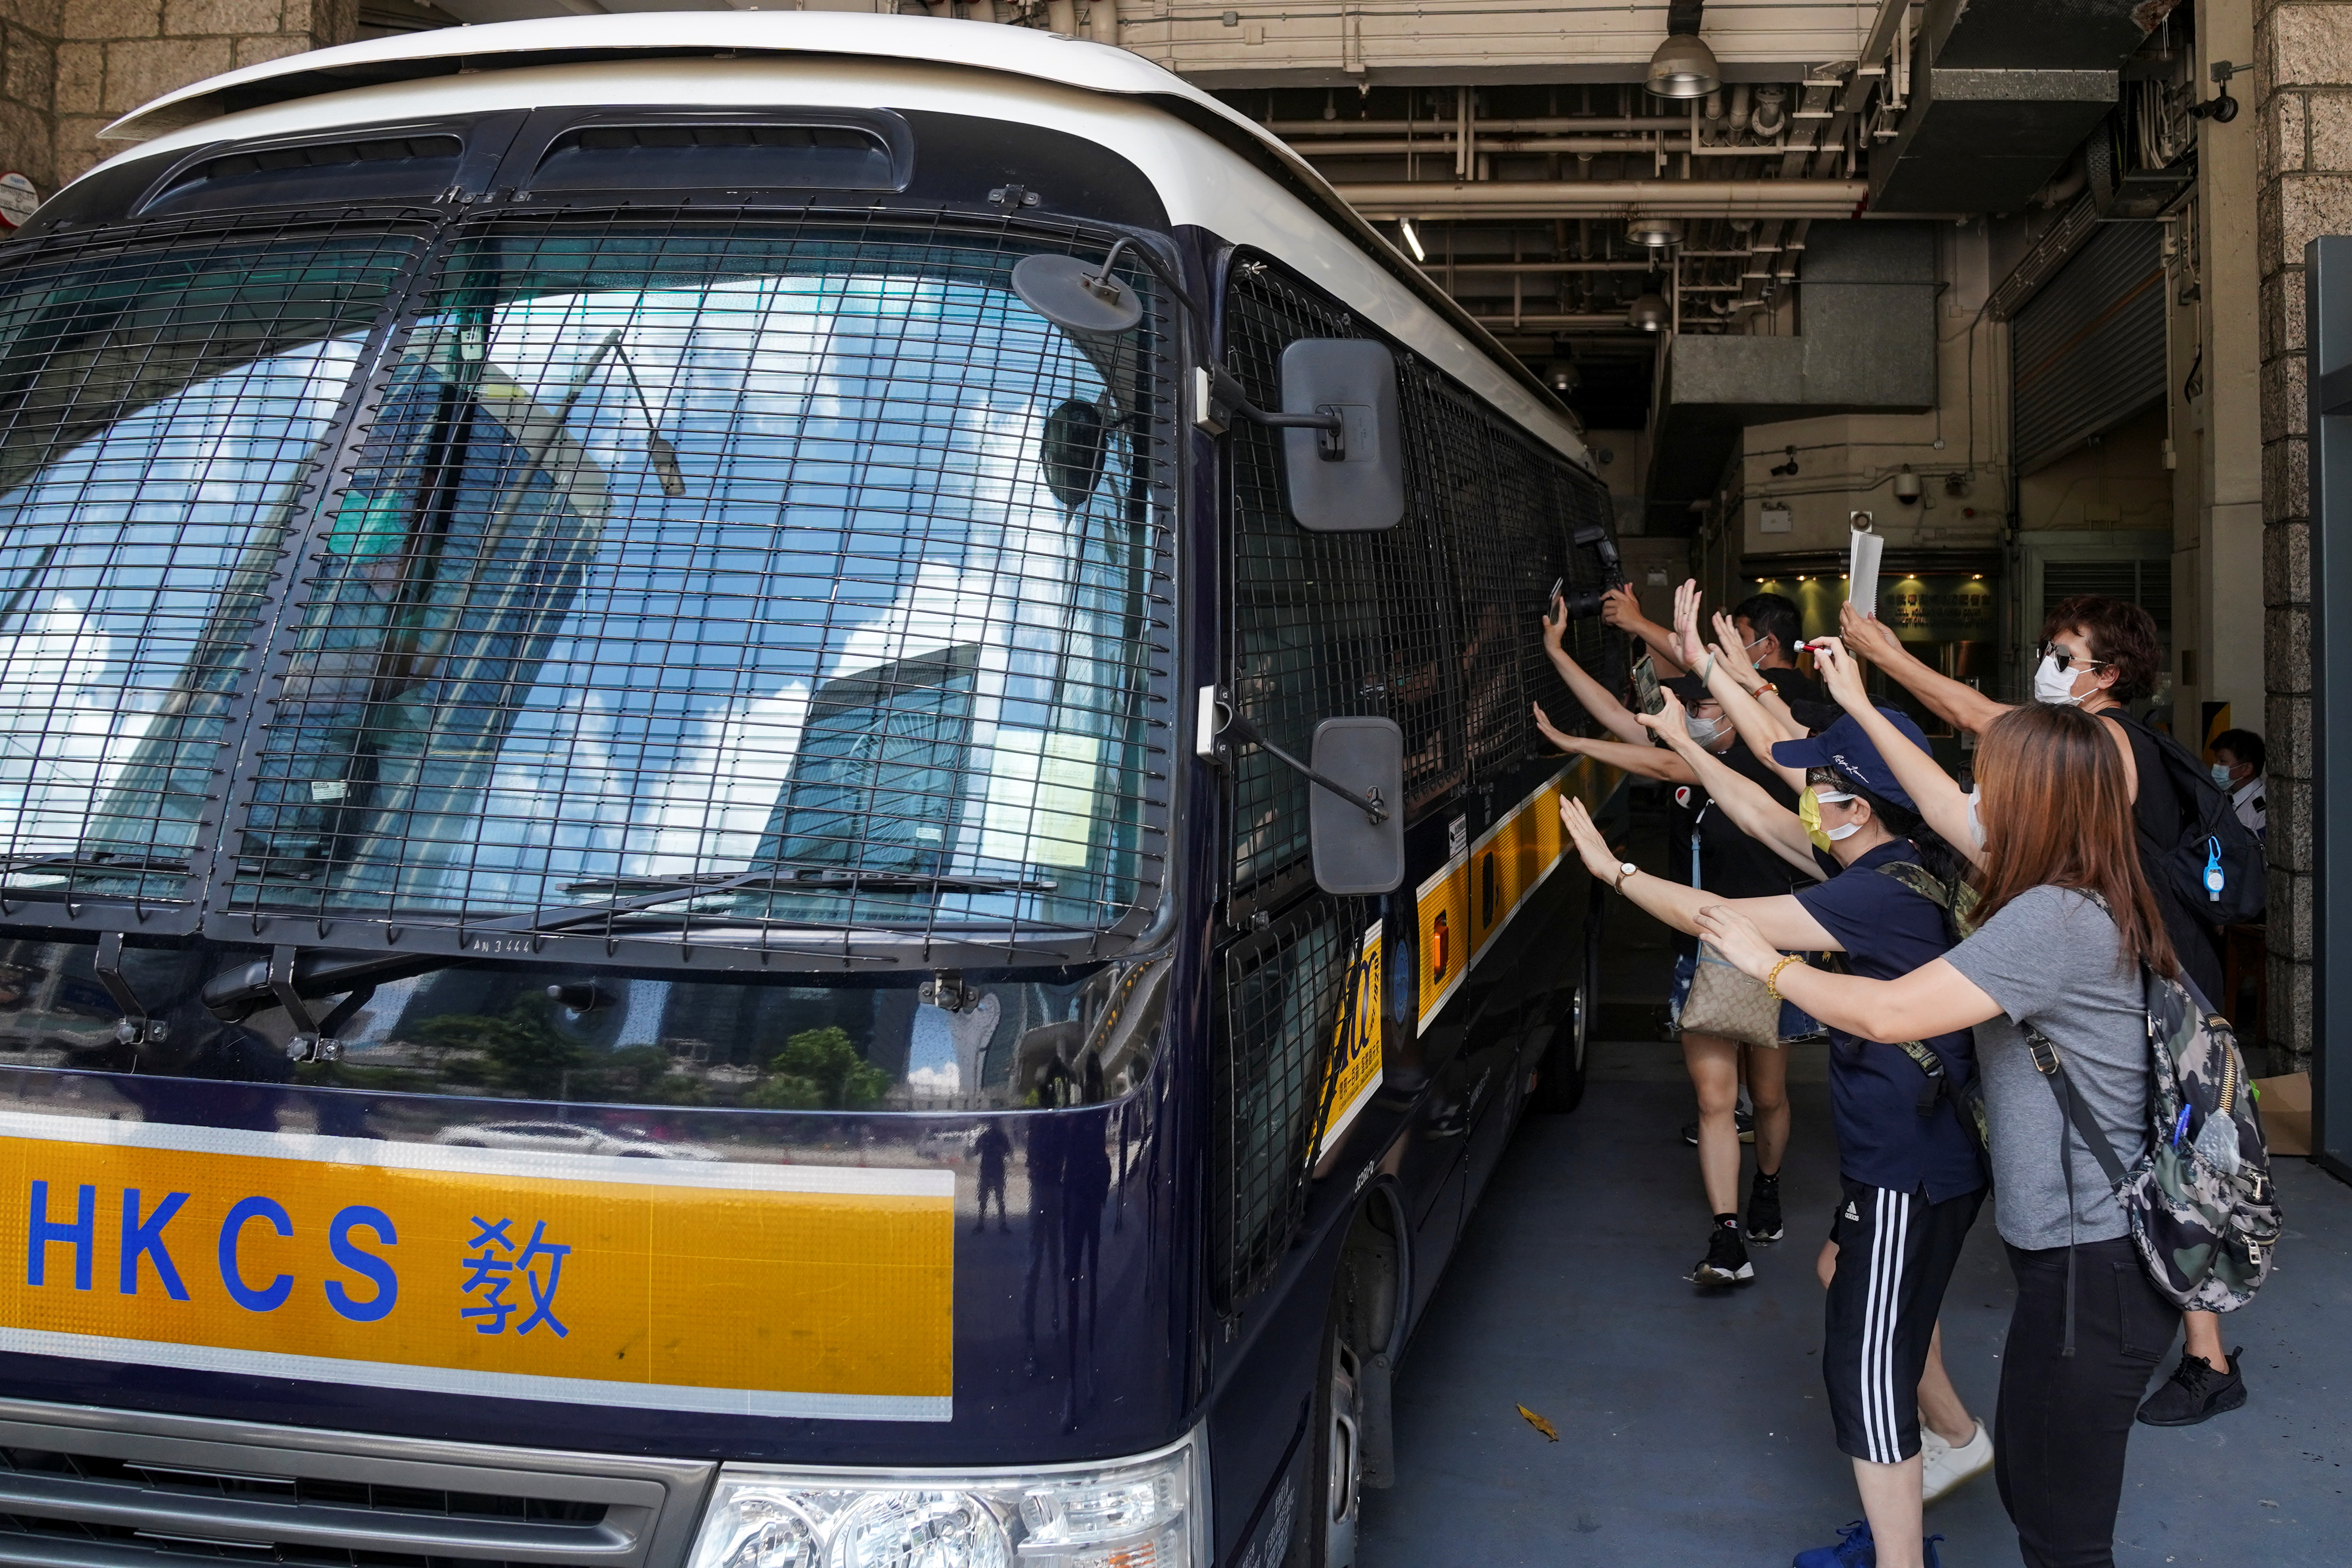 Supporters bid farewell to a prison van transporting Tong Ying-kit, a Hong Kong resident charged under the city's new national security law, who has been denied bail again in Hong Kong, China, August 25, 2020. REUTERS/Lam Yik